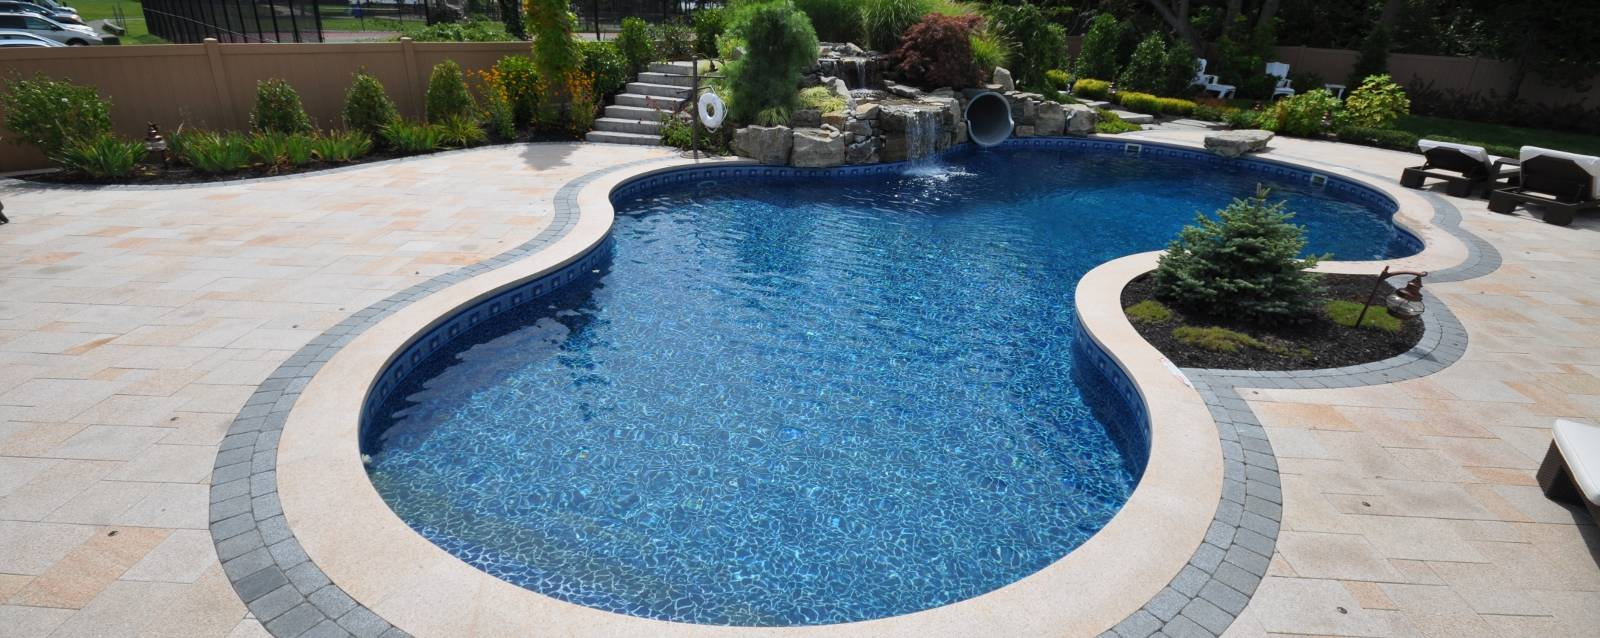 Long island swimming pools inground pools custom pools for Swimming pool installation companies